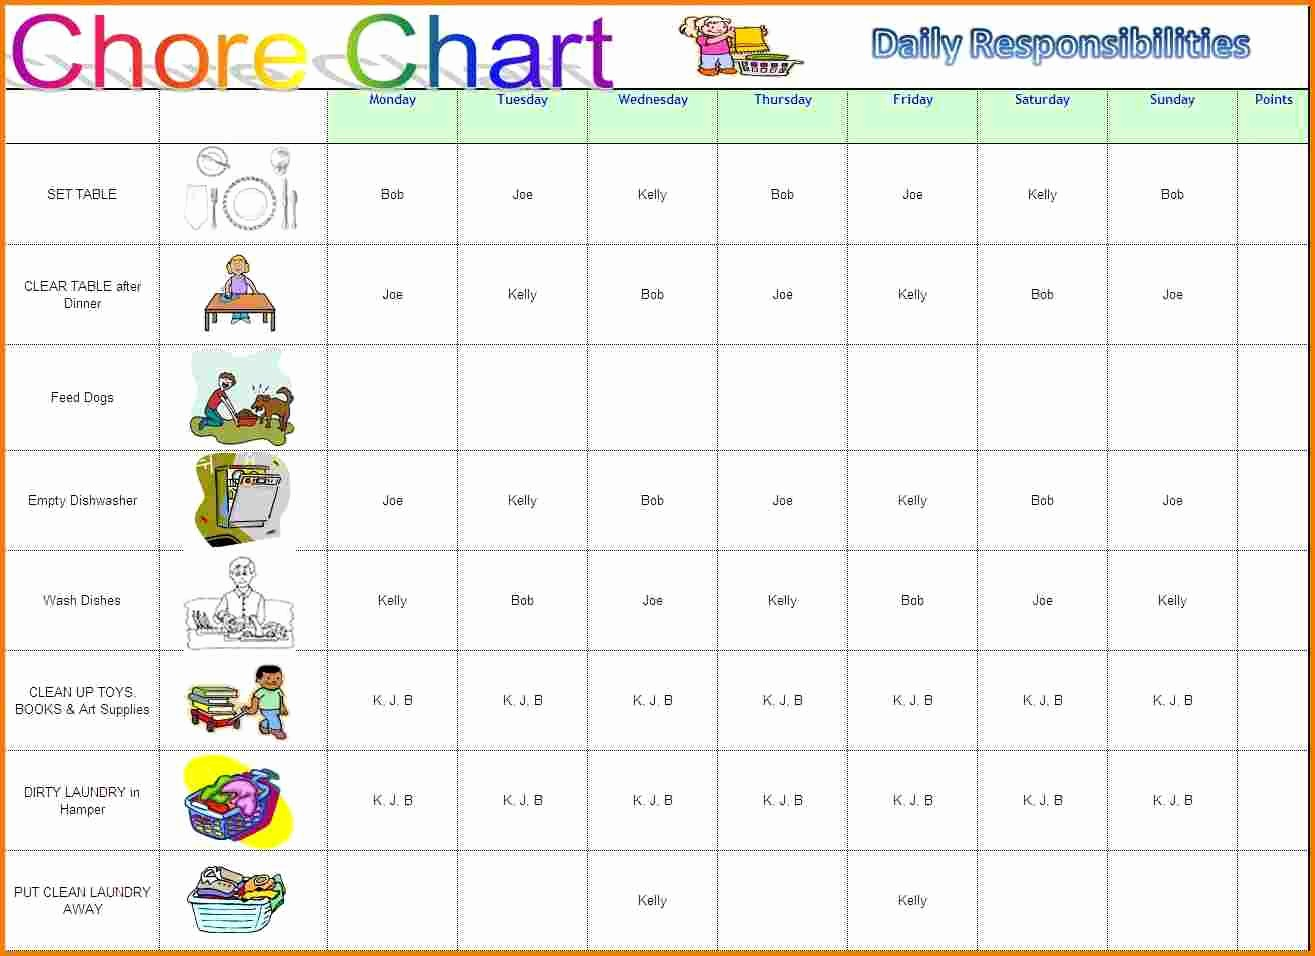 Weekly Chore Chart Template Excel Luxury Chore Template